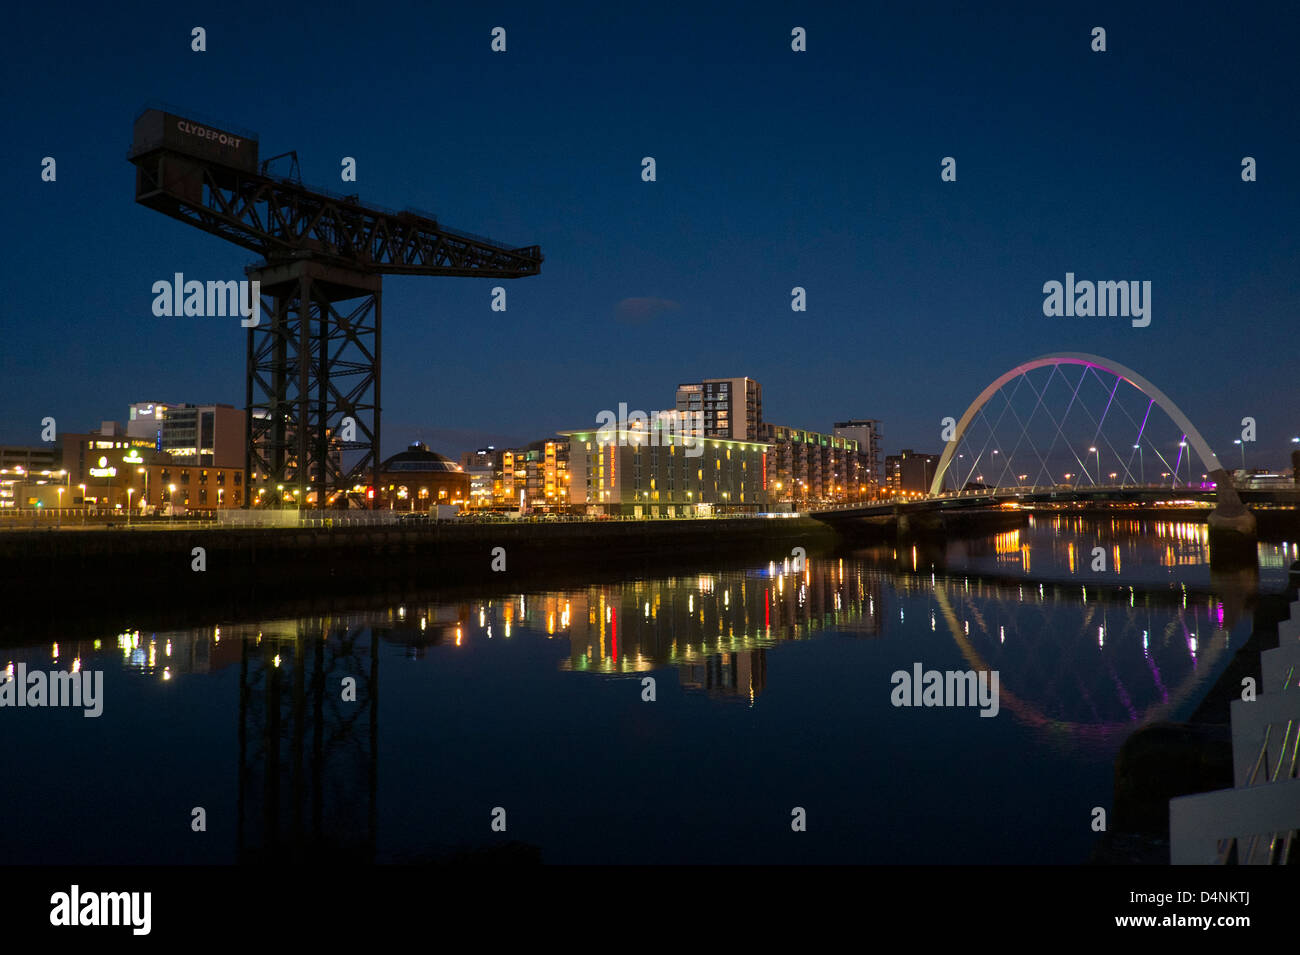 A night time view of the river Clyde, showing the Finnieston Crane the Clyde arc and the Hilton Garden Inn, Glasgow Stock Photo